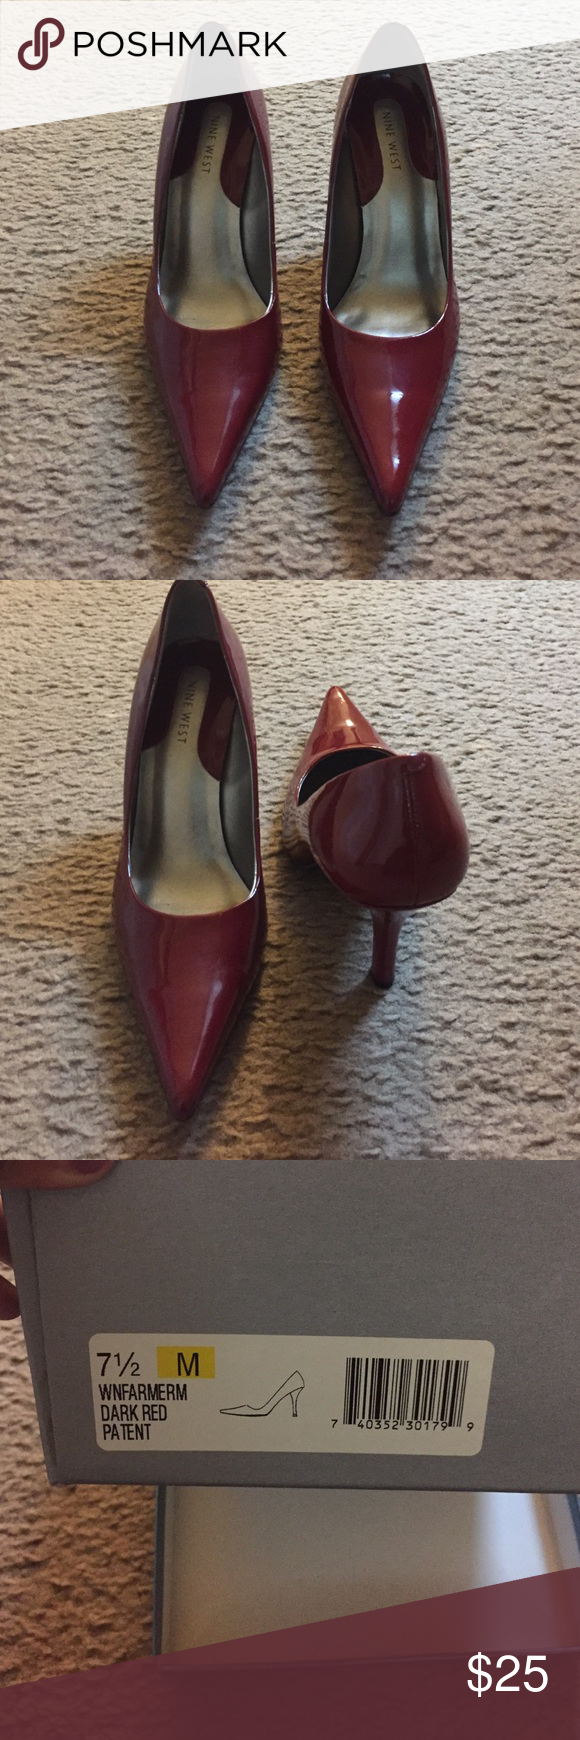 Red heels Wore once. Used condition. Perfect to wear to a fancy party! Nine West Shoes Heels